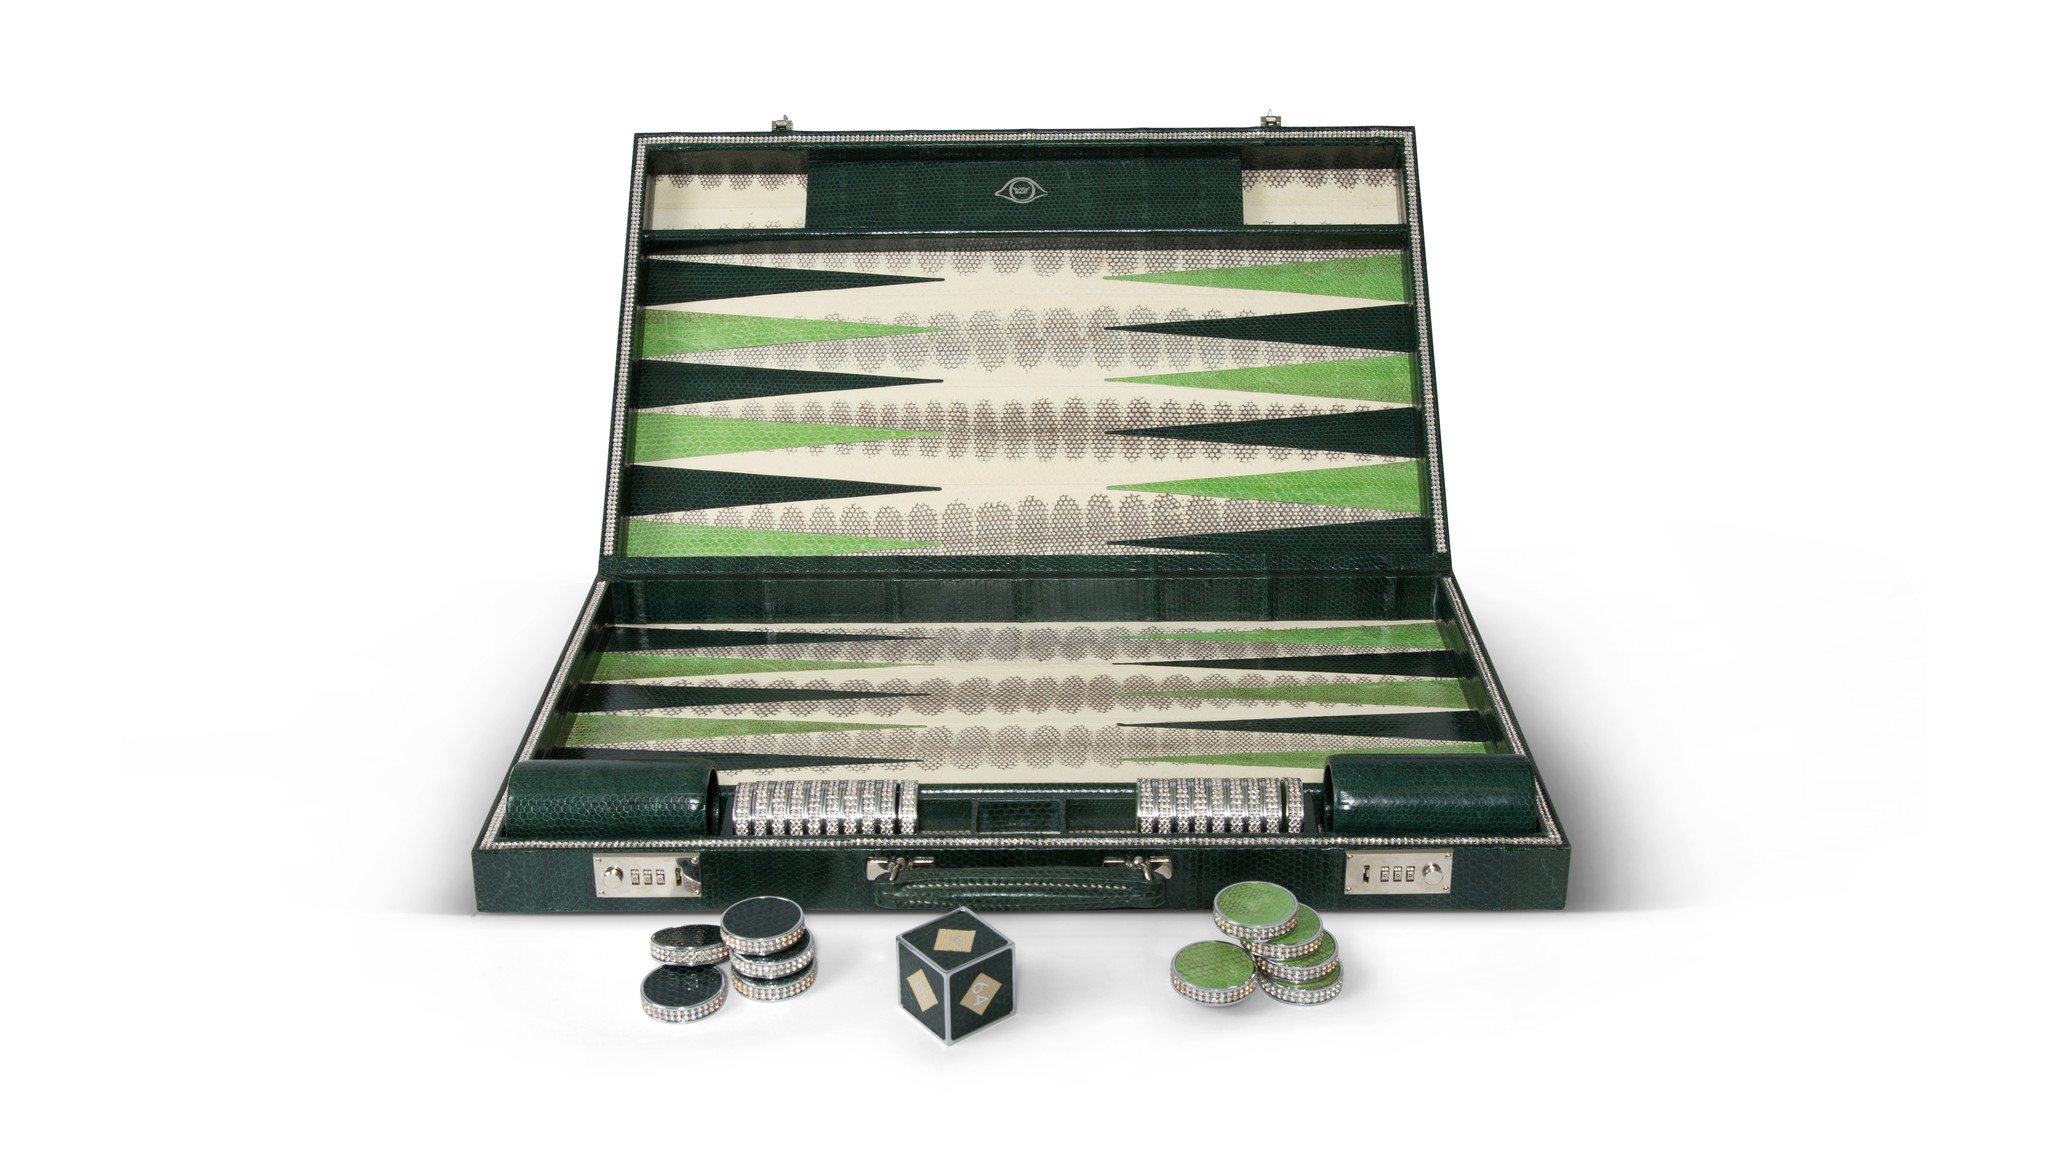 Geoffrey Parker watersnake backgammon set with Swarovski crystal detailing , $7,117 at Leclaireur in